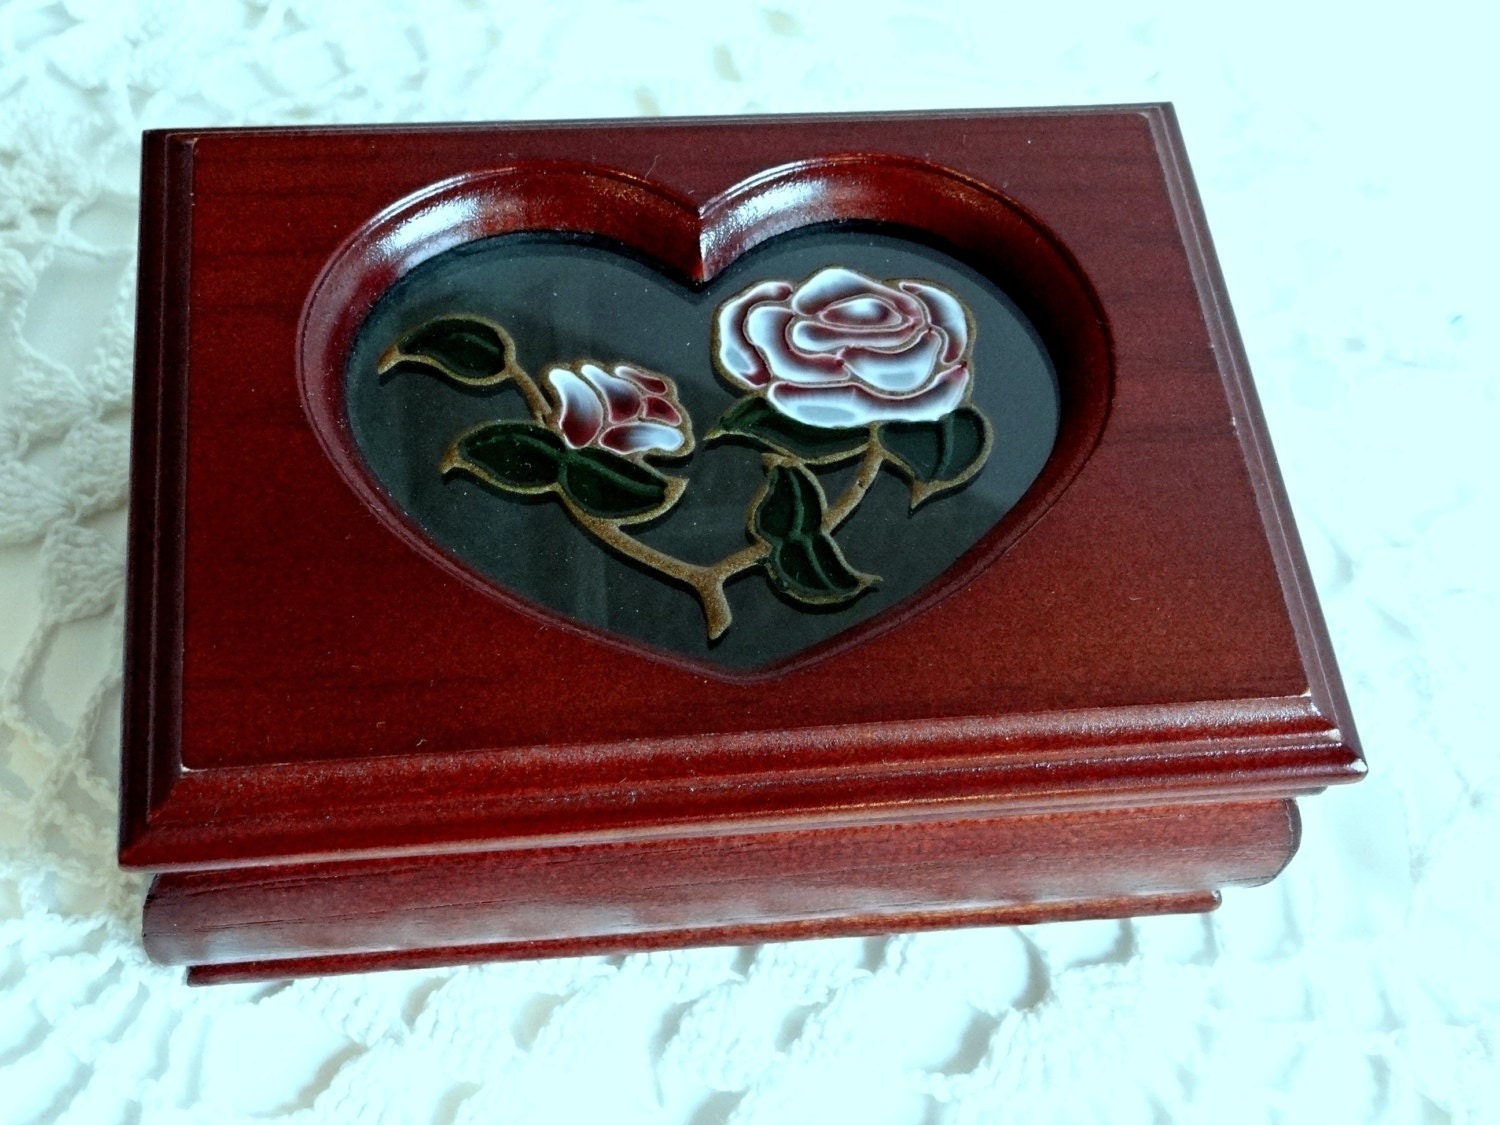 Vintage Wood Jewelry Box With Glass Heart Amp Rose Insert